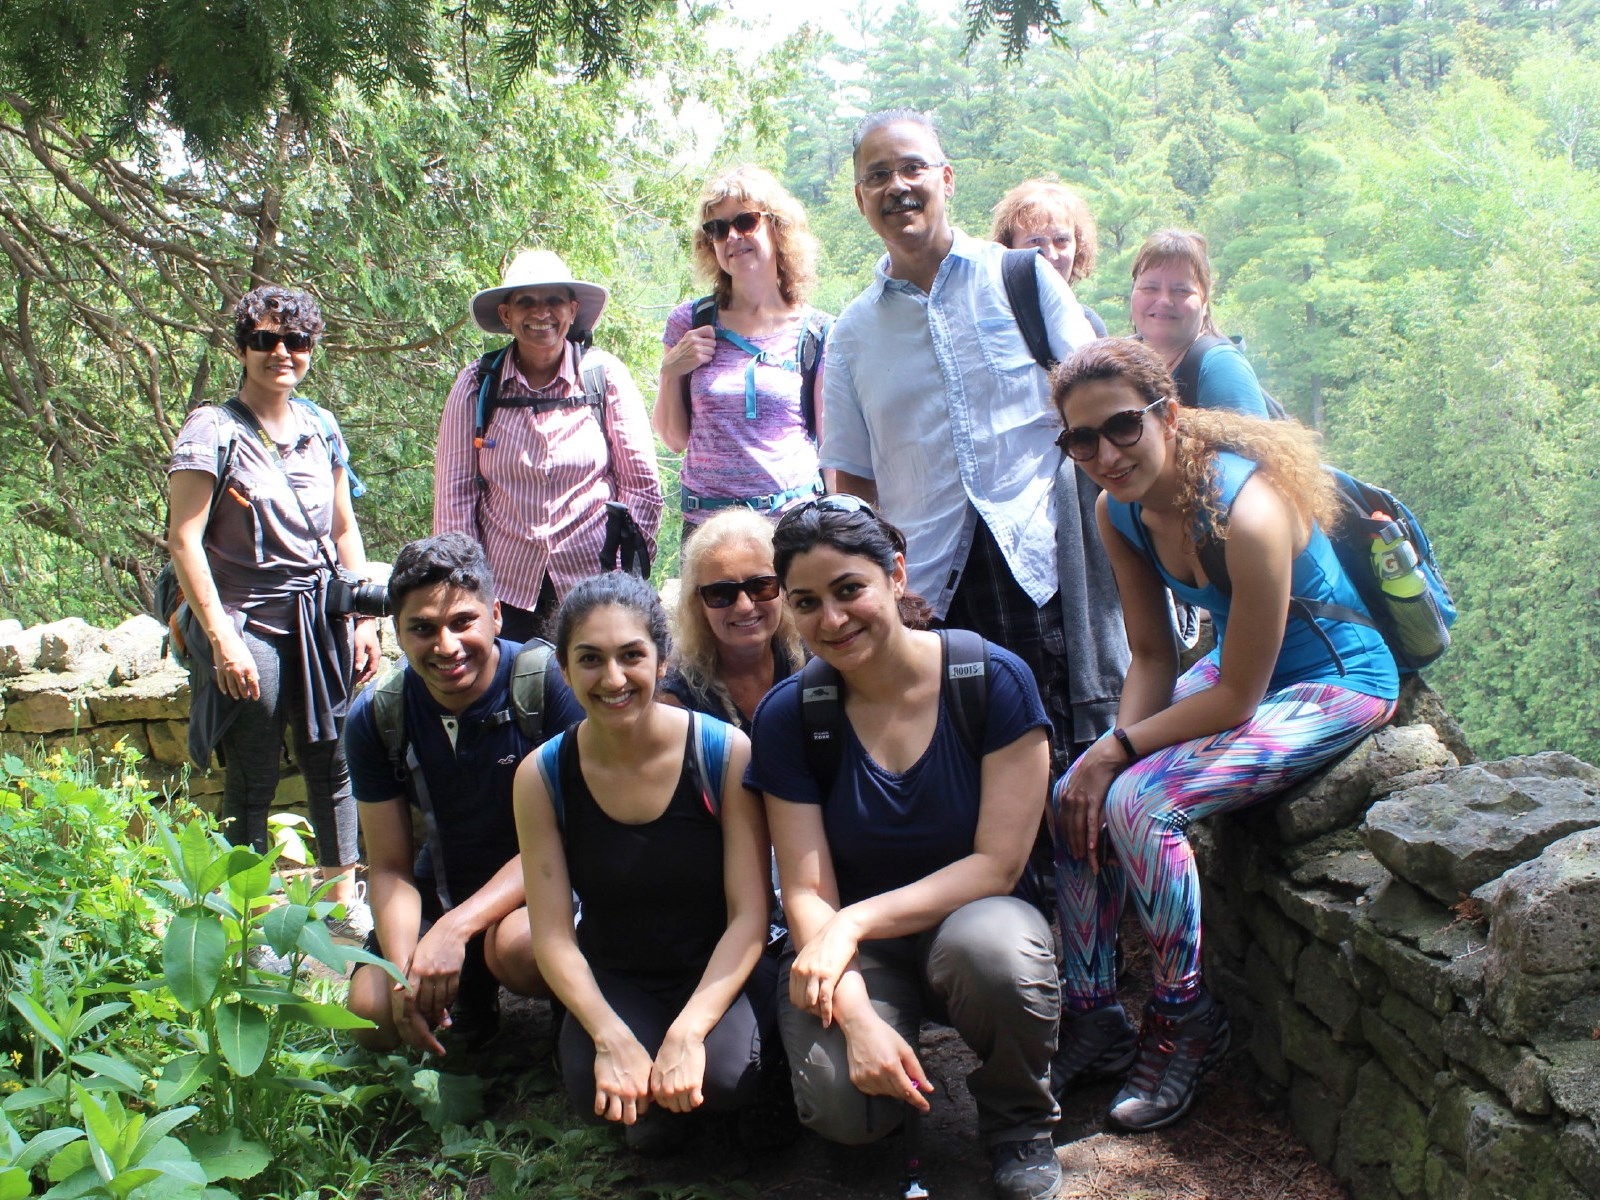 TorontoHiking #Elora Gorge hiking photos: Sat, June 17 #Parkbus